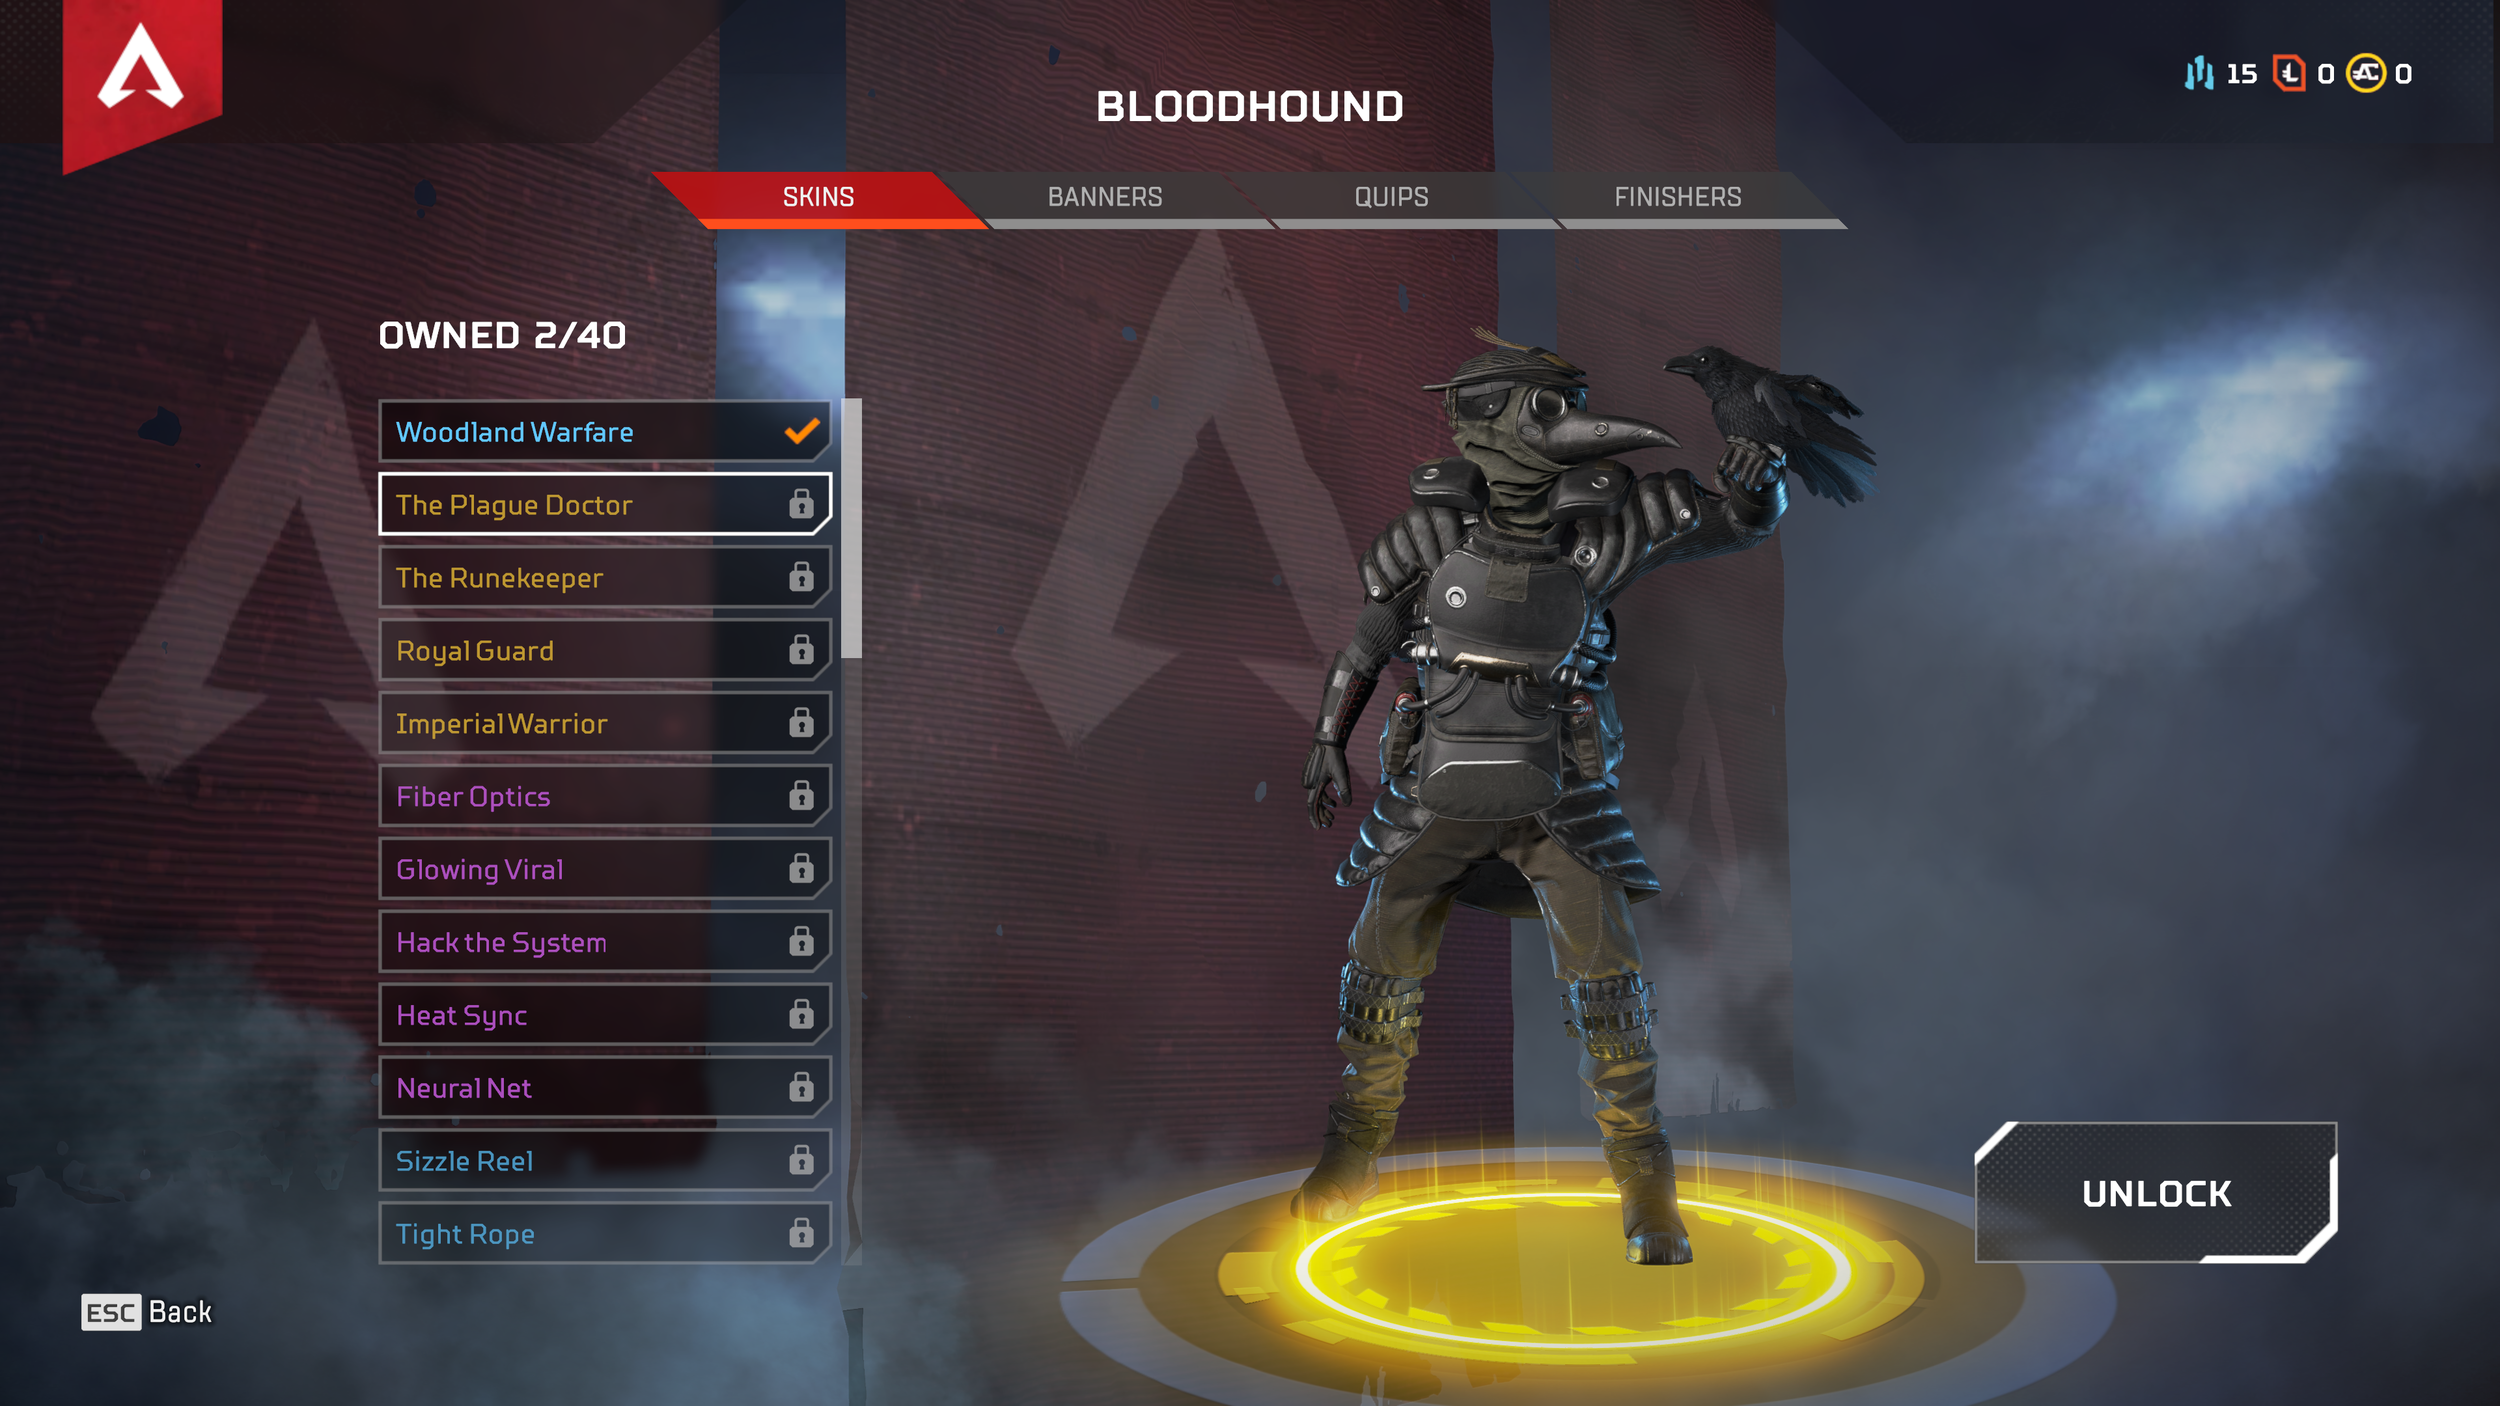 A look at some of the skins. Image via  Trusted Reviews .